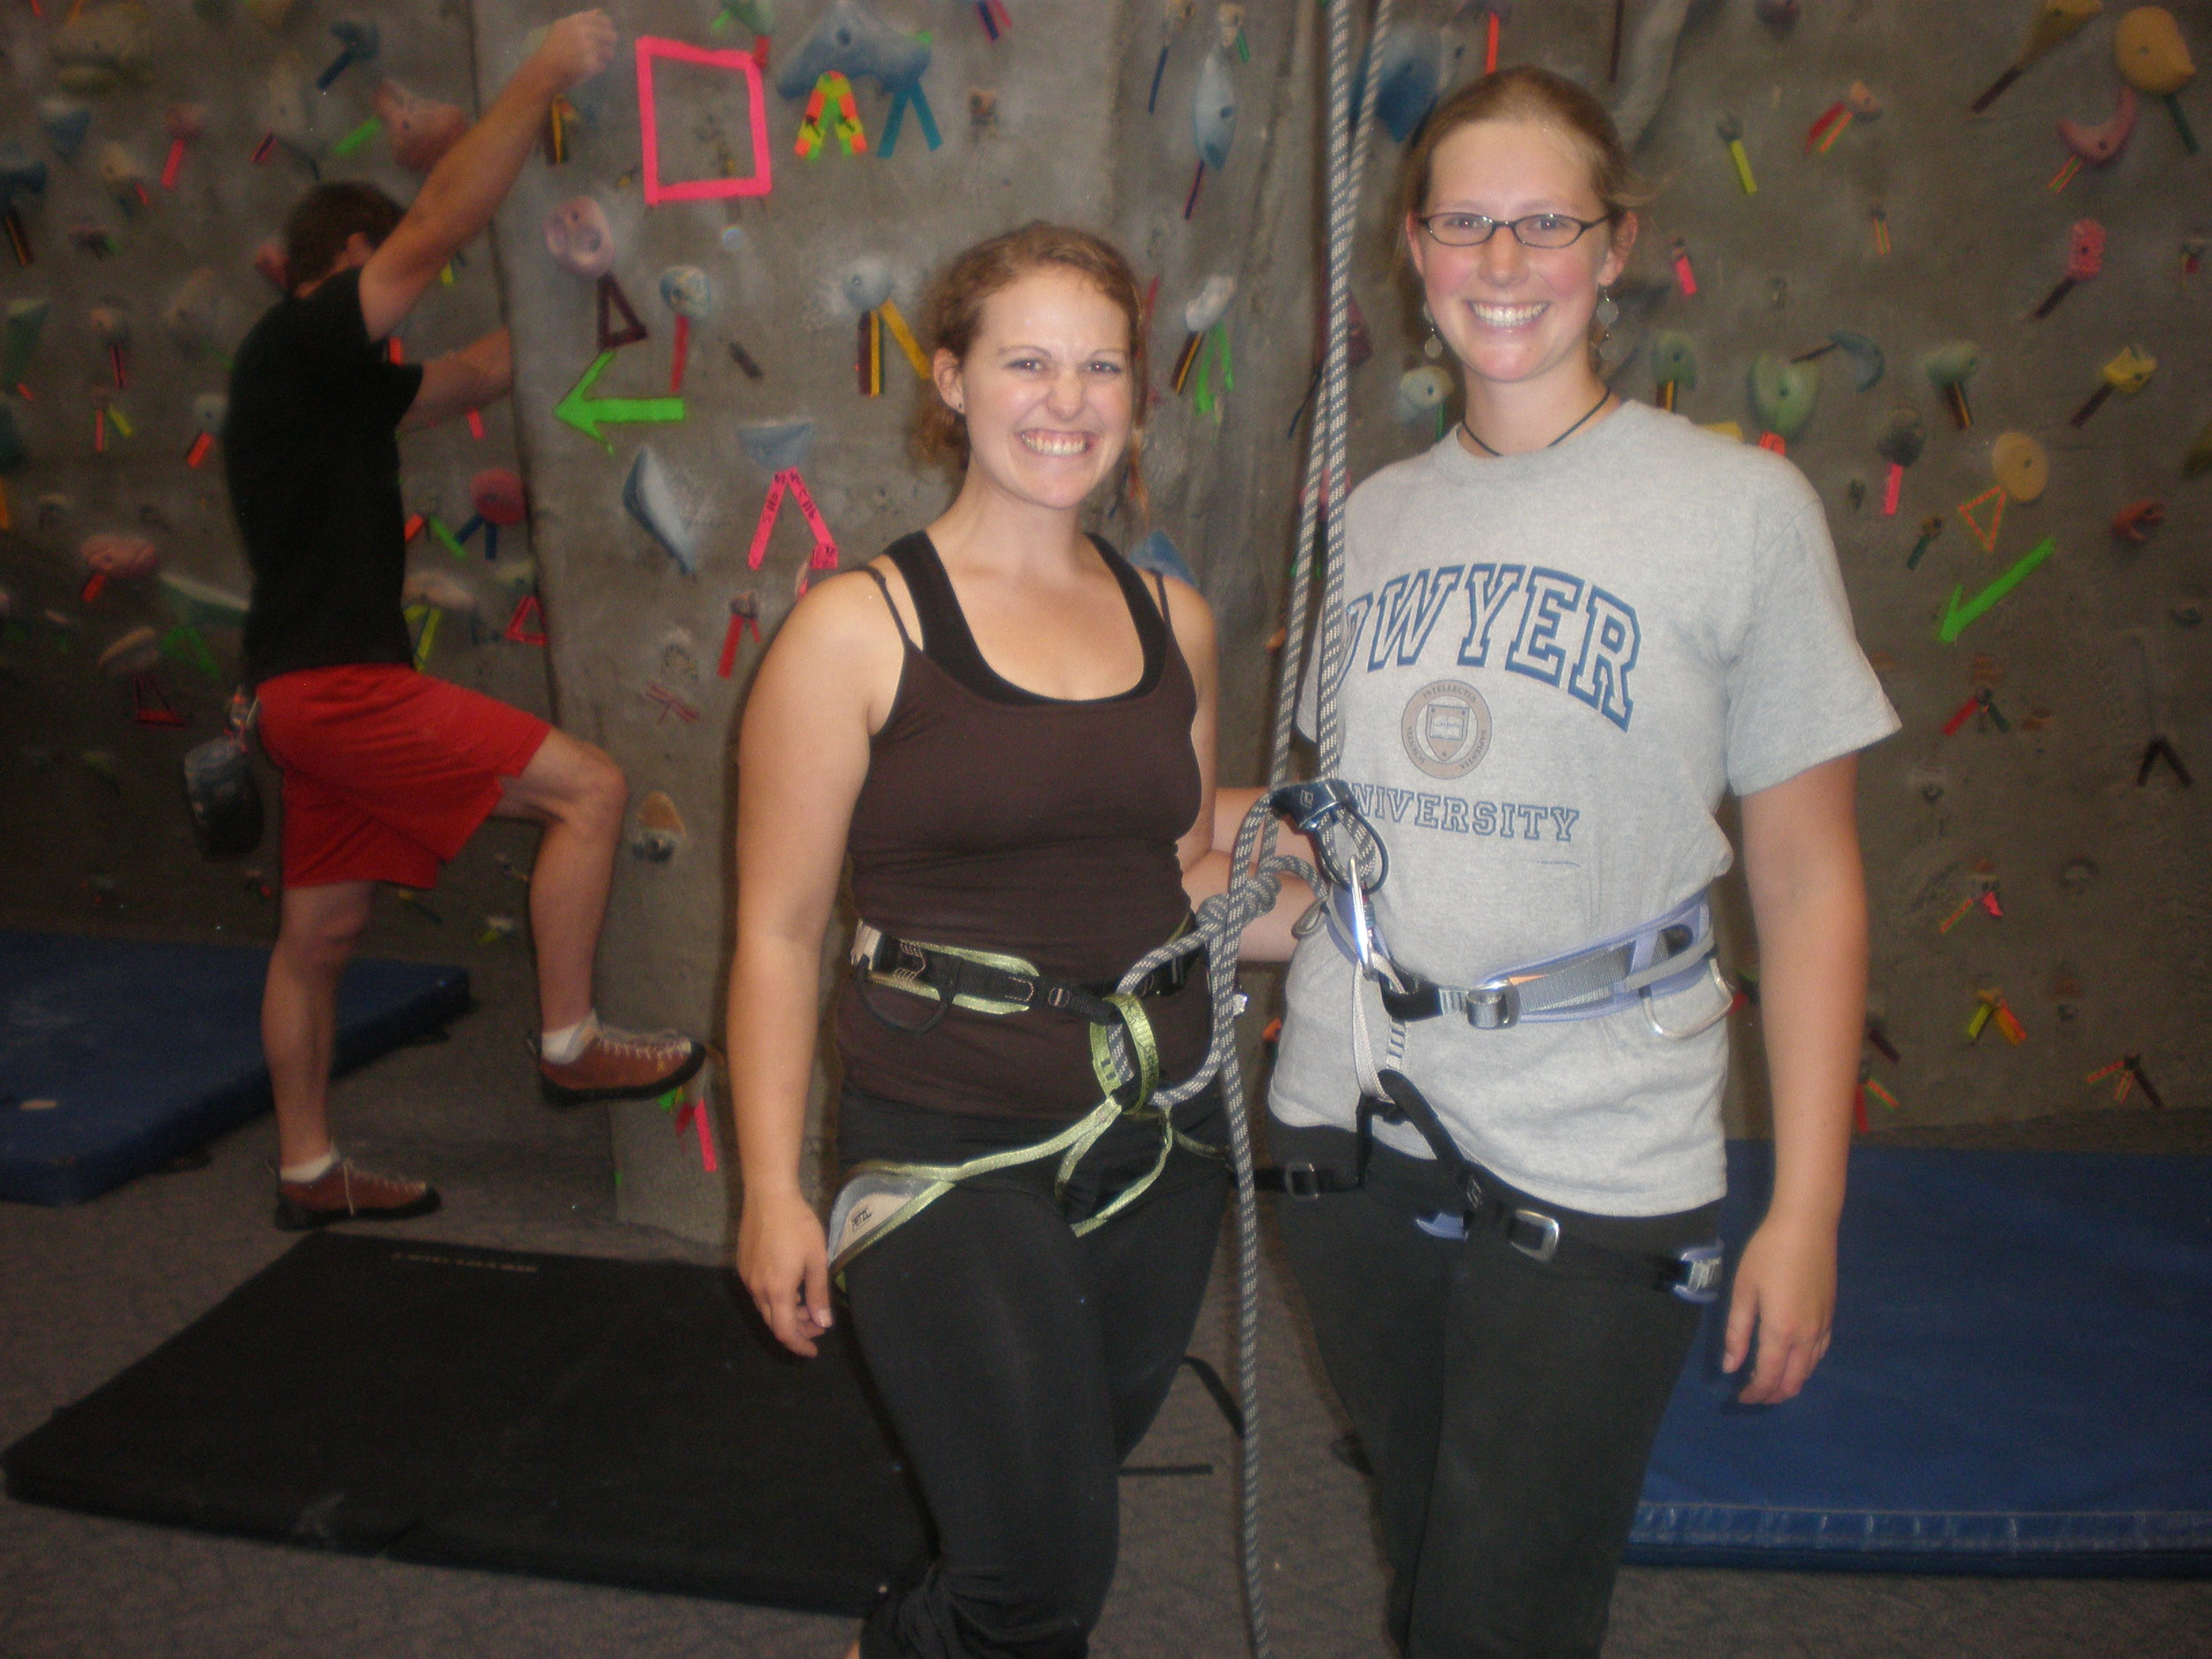 I met my roommate for senior year in a rock climbing class. It was a great start to a really fun living situation.